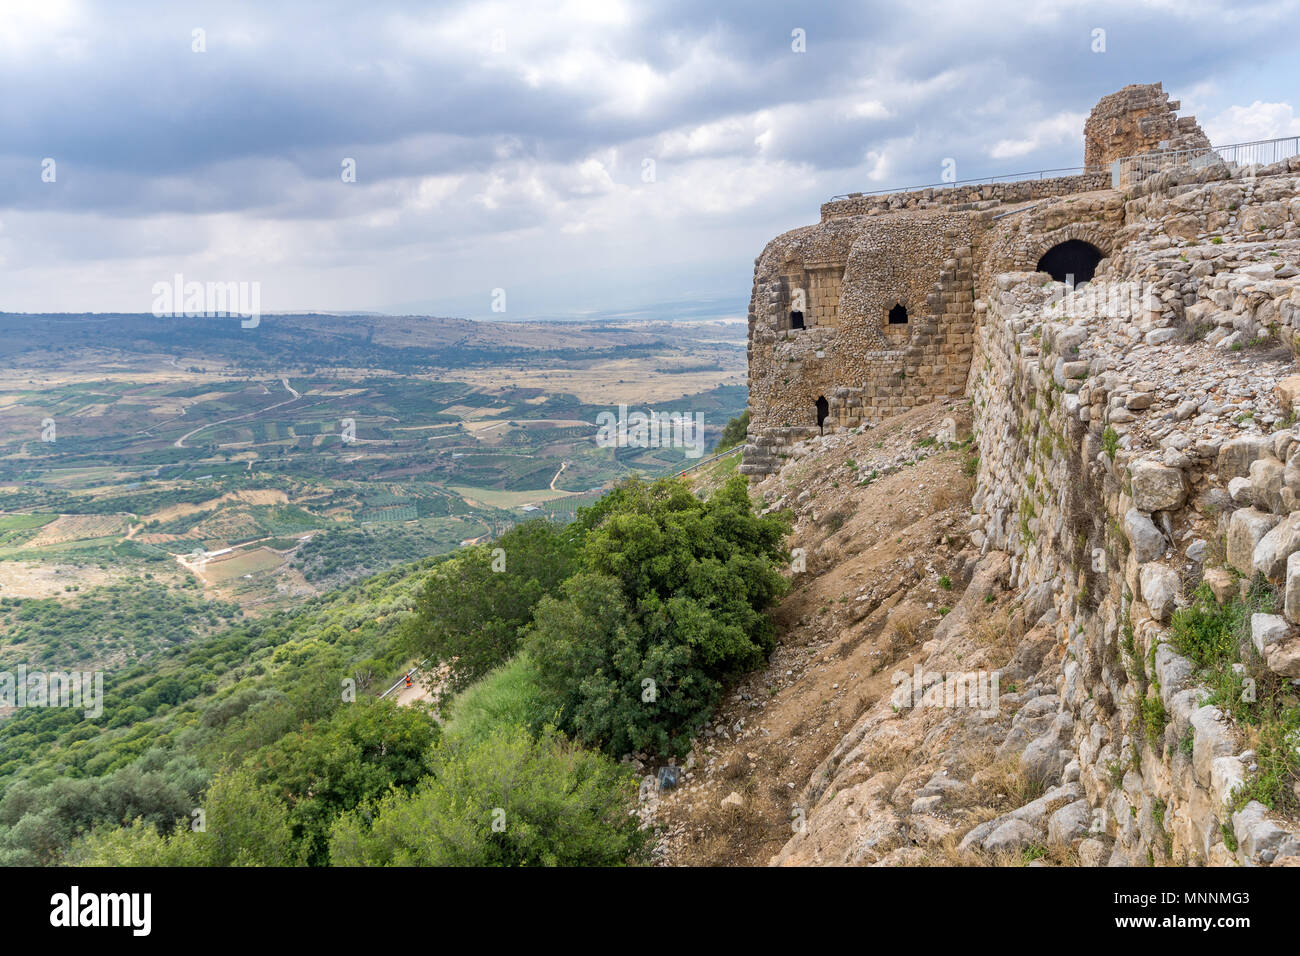 View of landscape and the Nimrod Fortress, a 13th century Muslim castle in northern Israel, now a national park - Stock Image